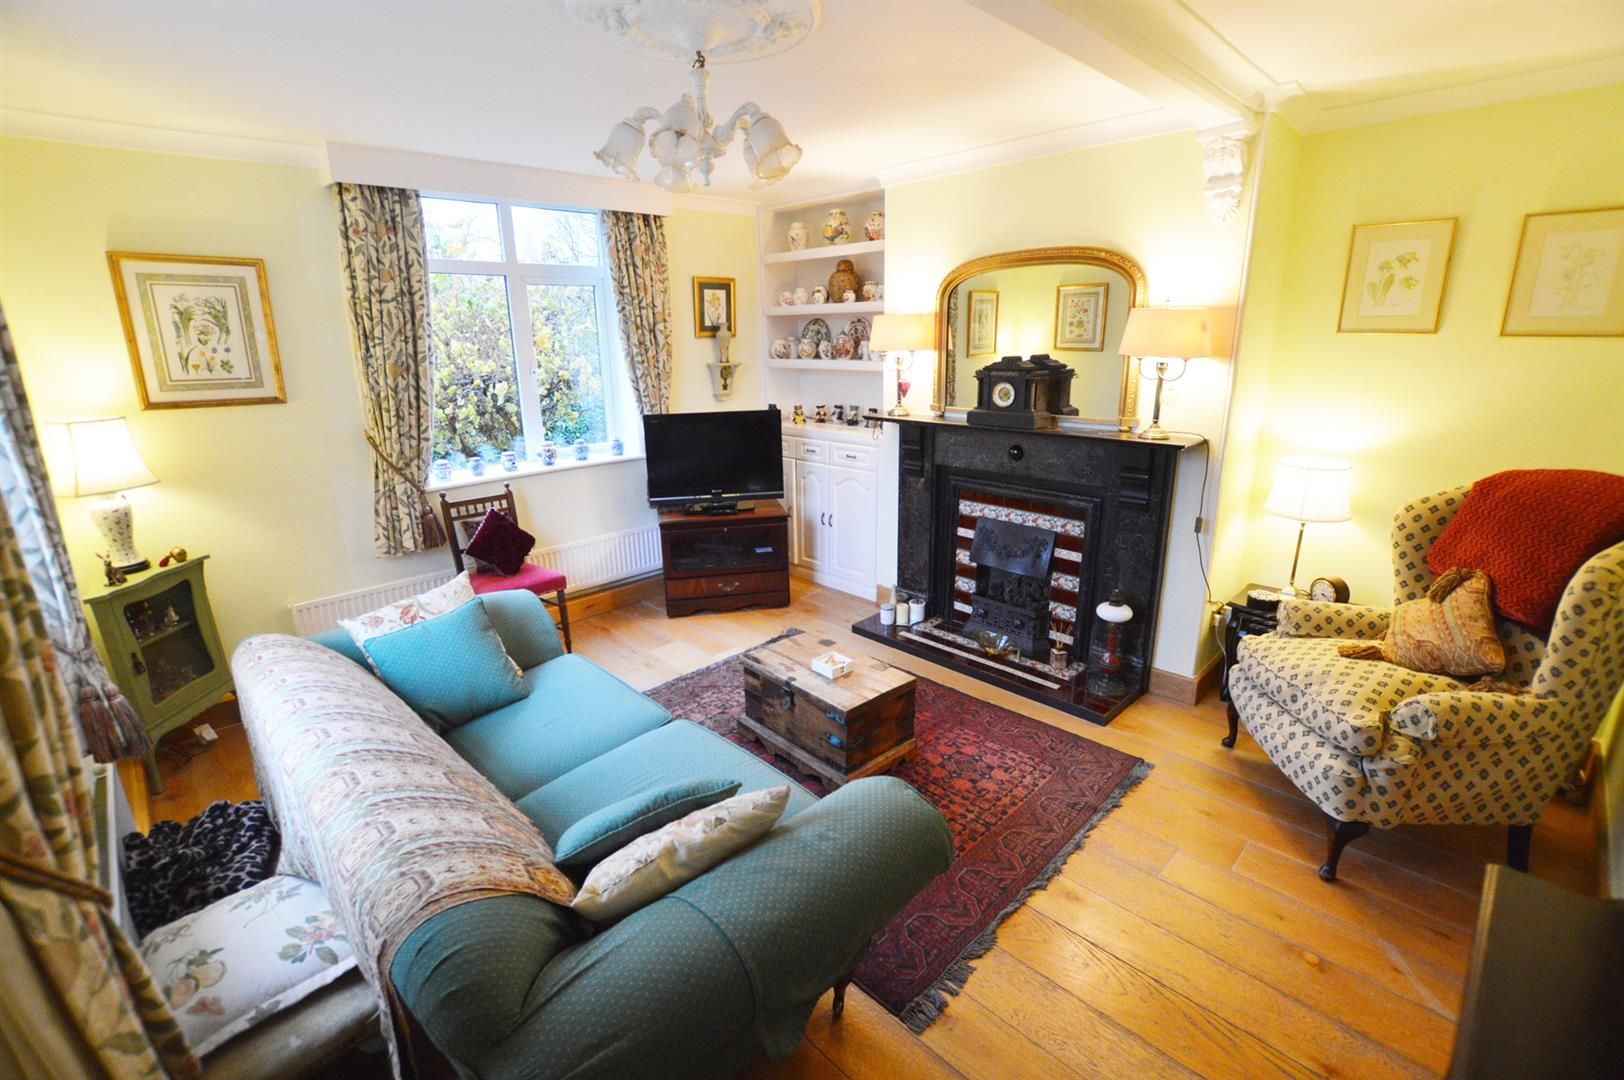 4 bed semi-detached for sale in Leysters  - Property Image 2